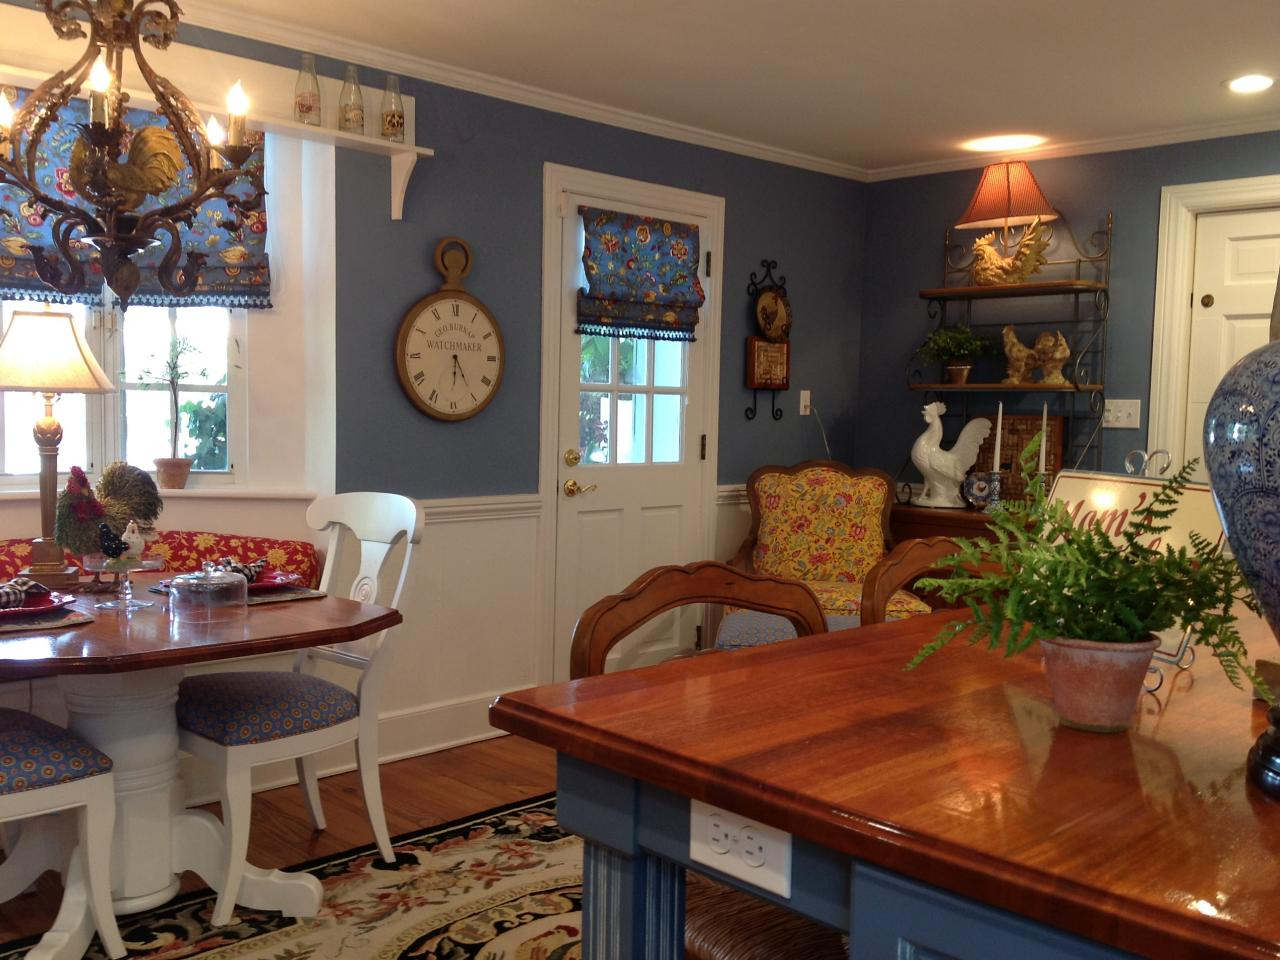 french country kitchen blue and yellow photo - 7 & French country kitchen blue and yellow | Hawk Haven